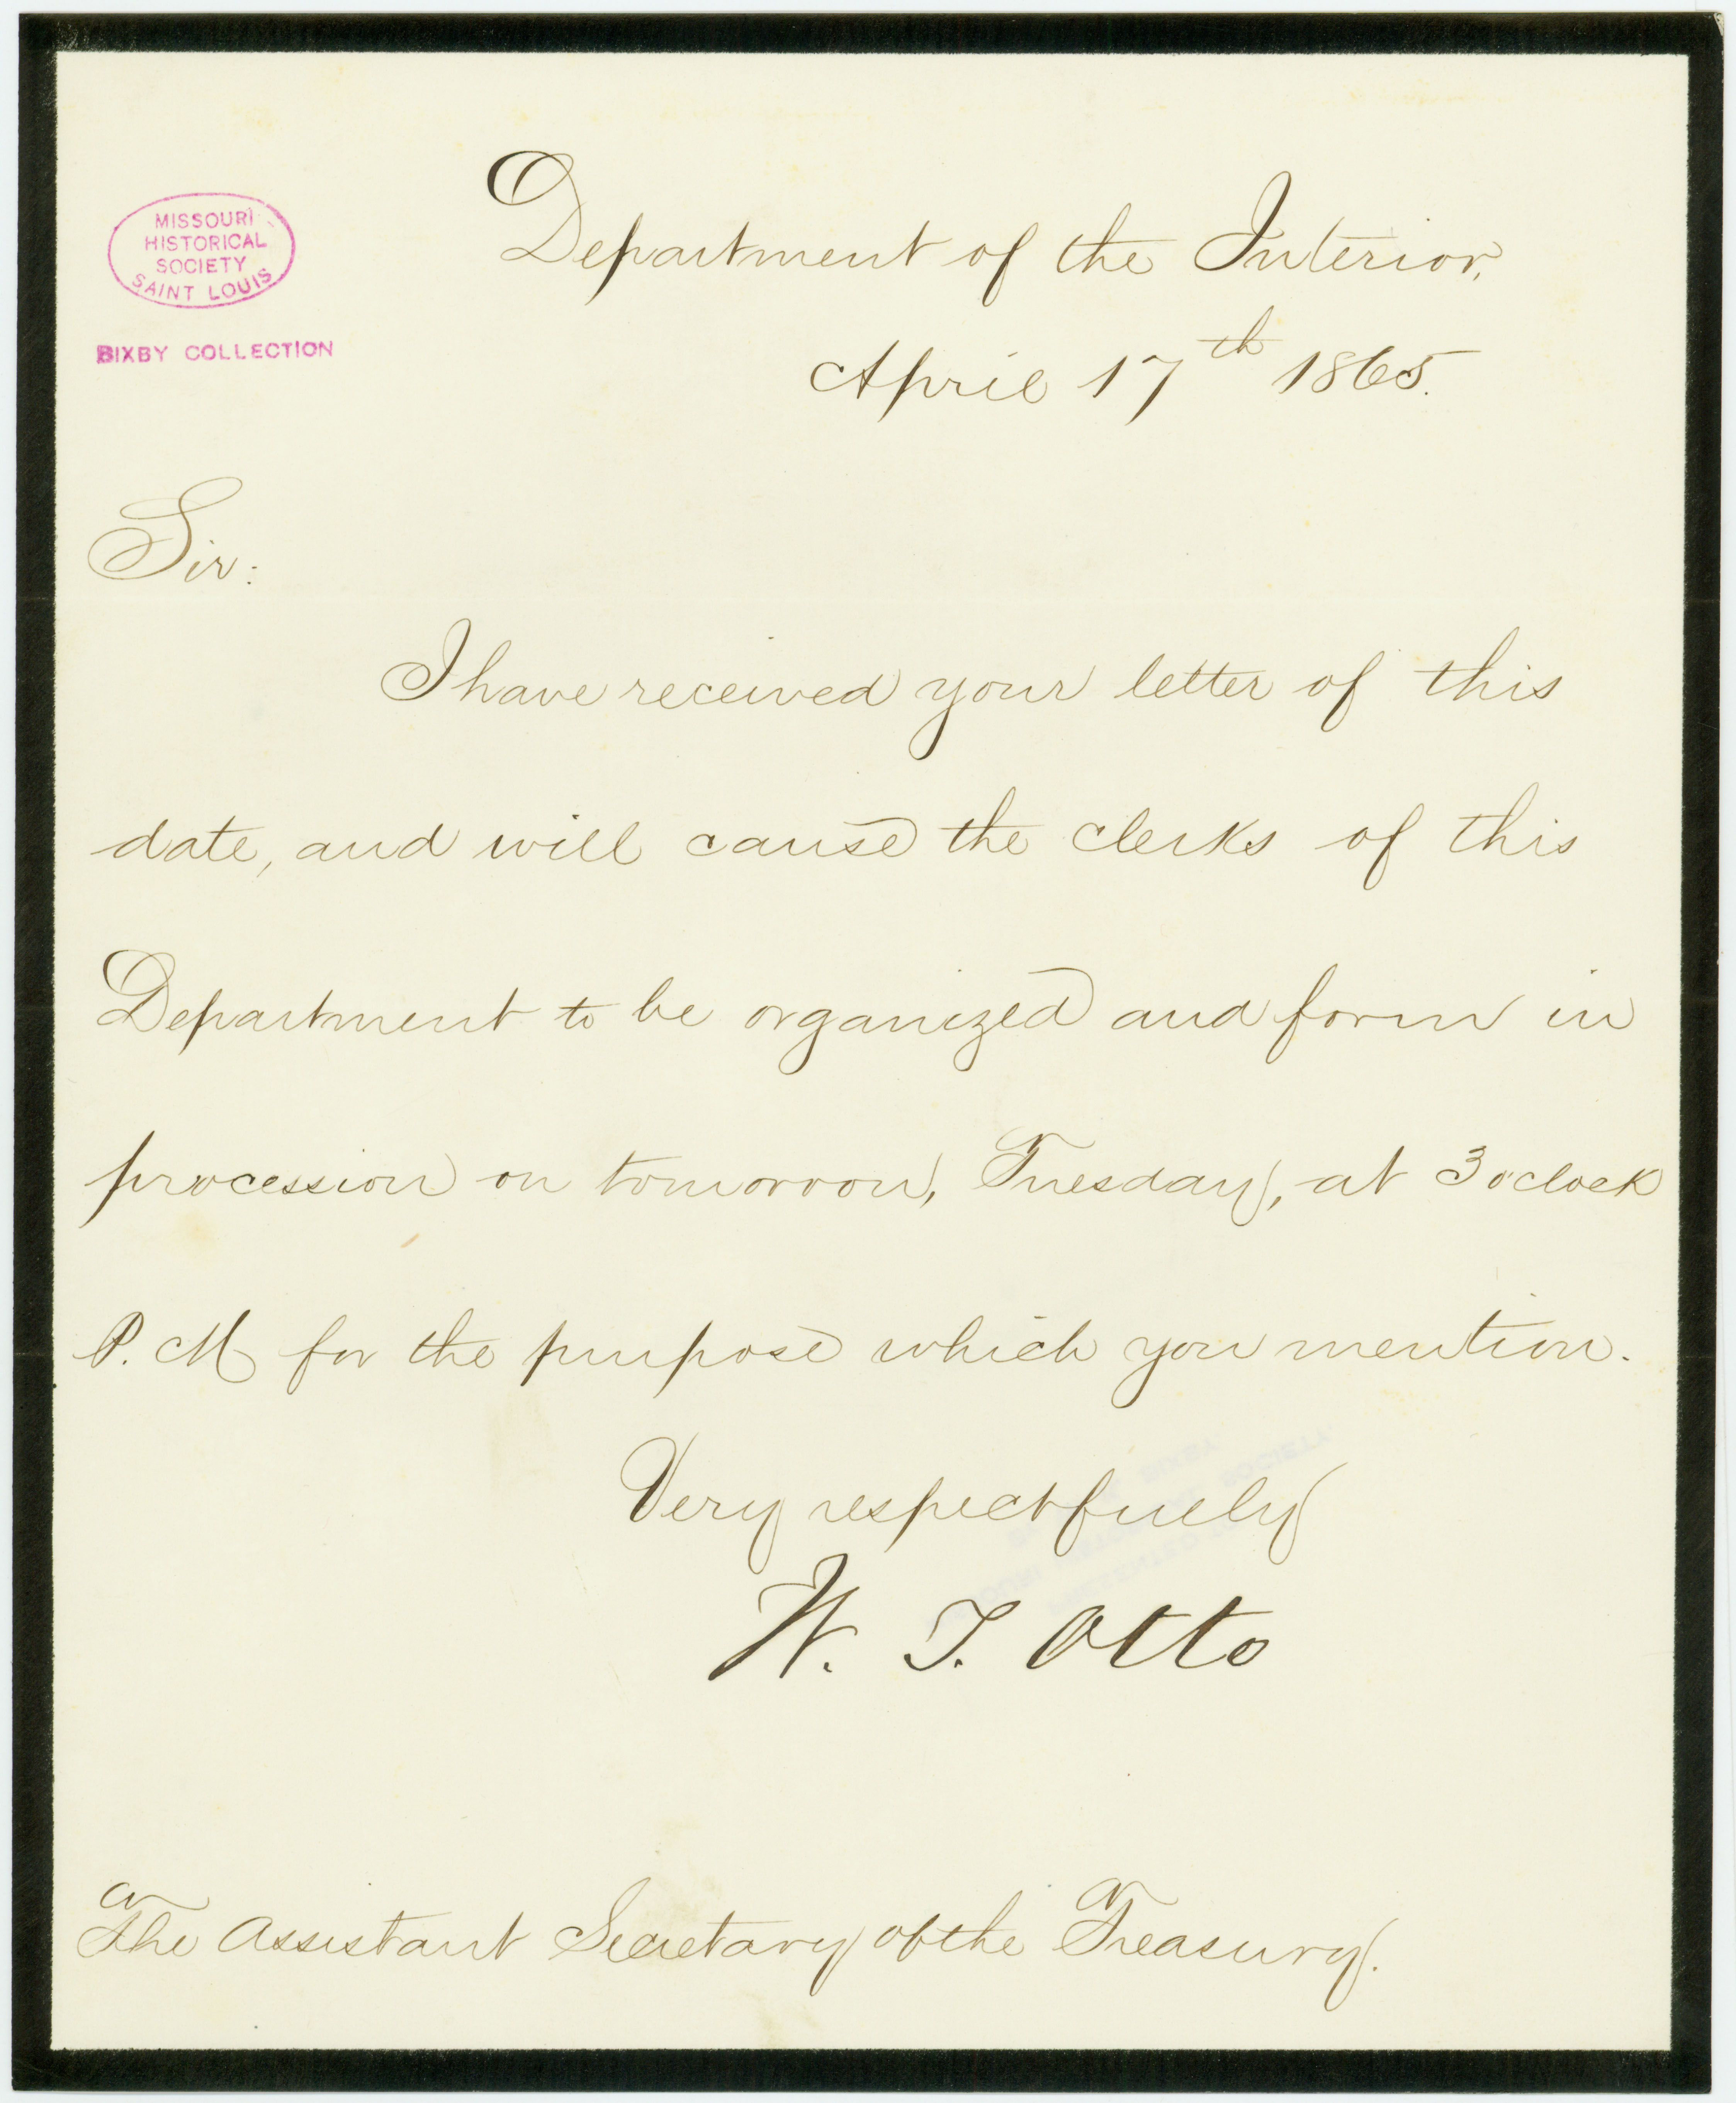 Letter signed W.J. Otto, Department of the Interior, to Assistant Secretary of the Treasury, [George Harrington], April 17, 1865